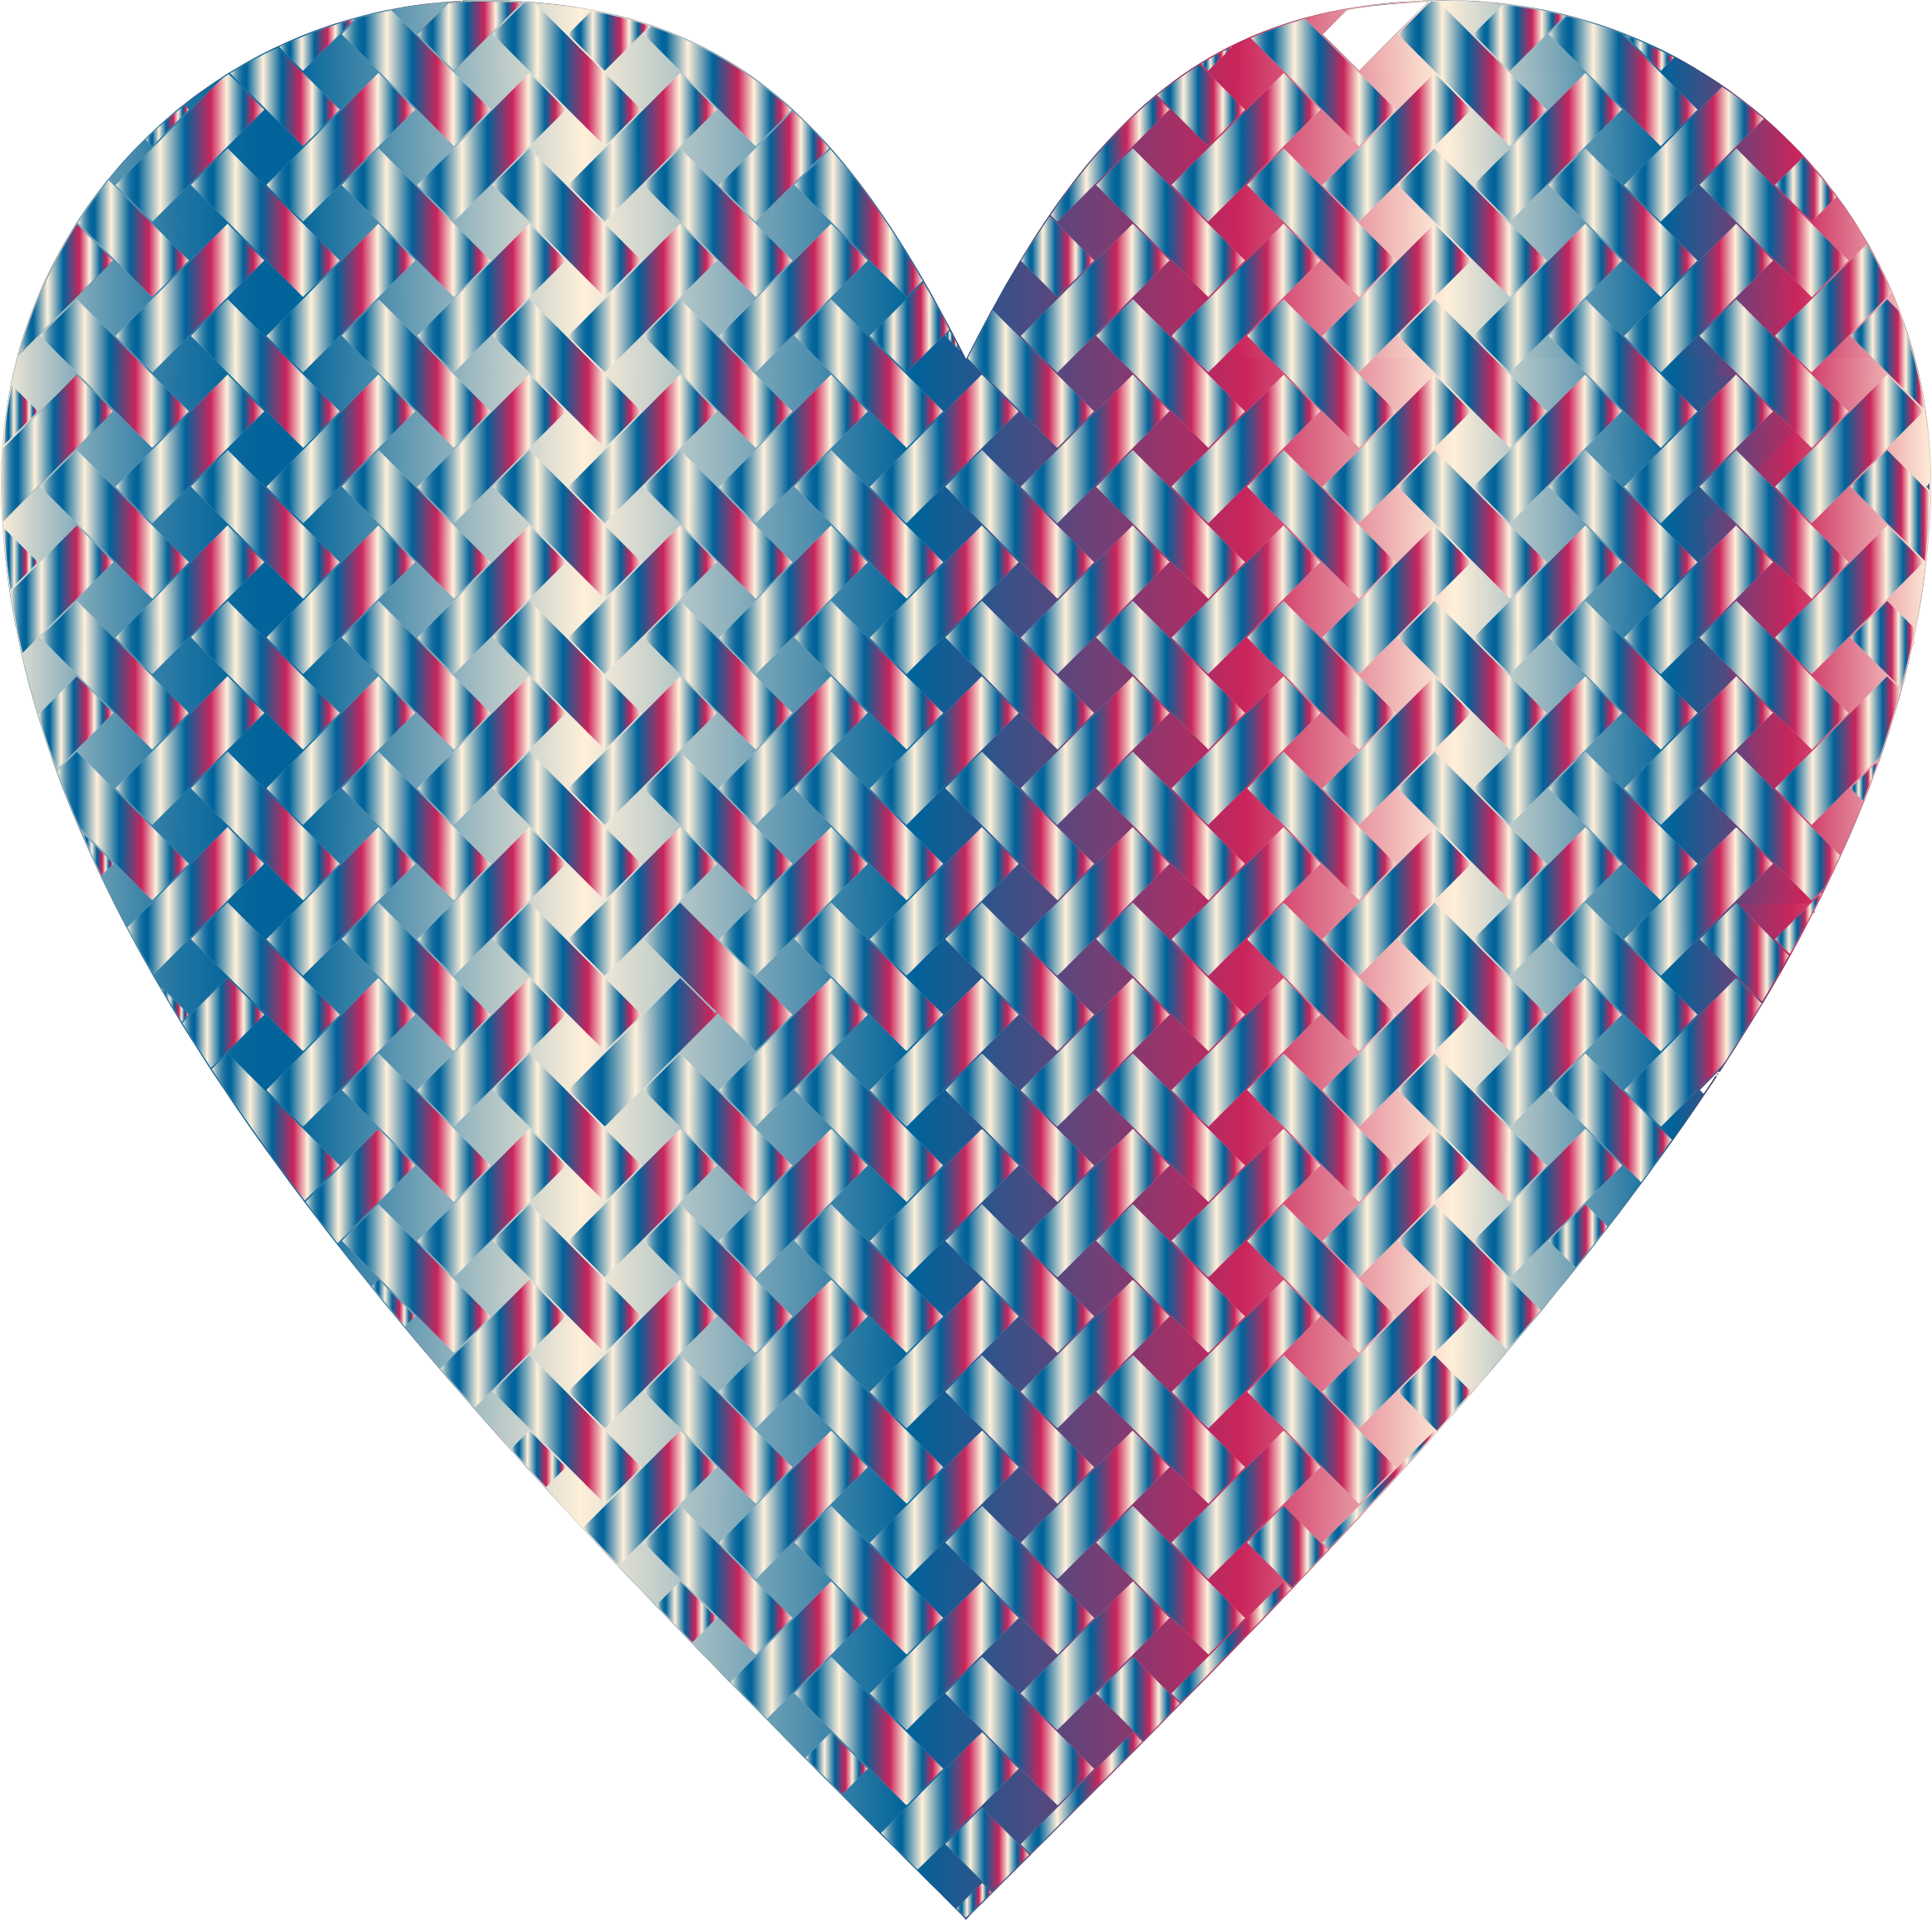 Colorful Heart Lattice Weave 7 by GDJ